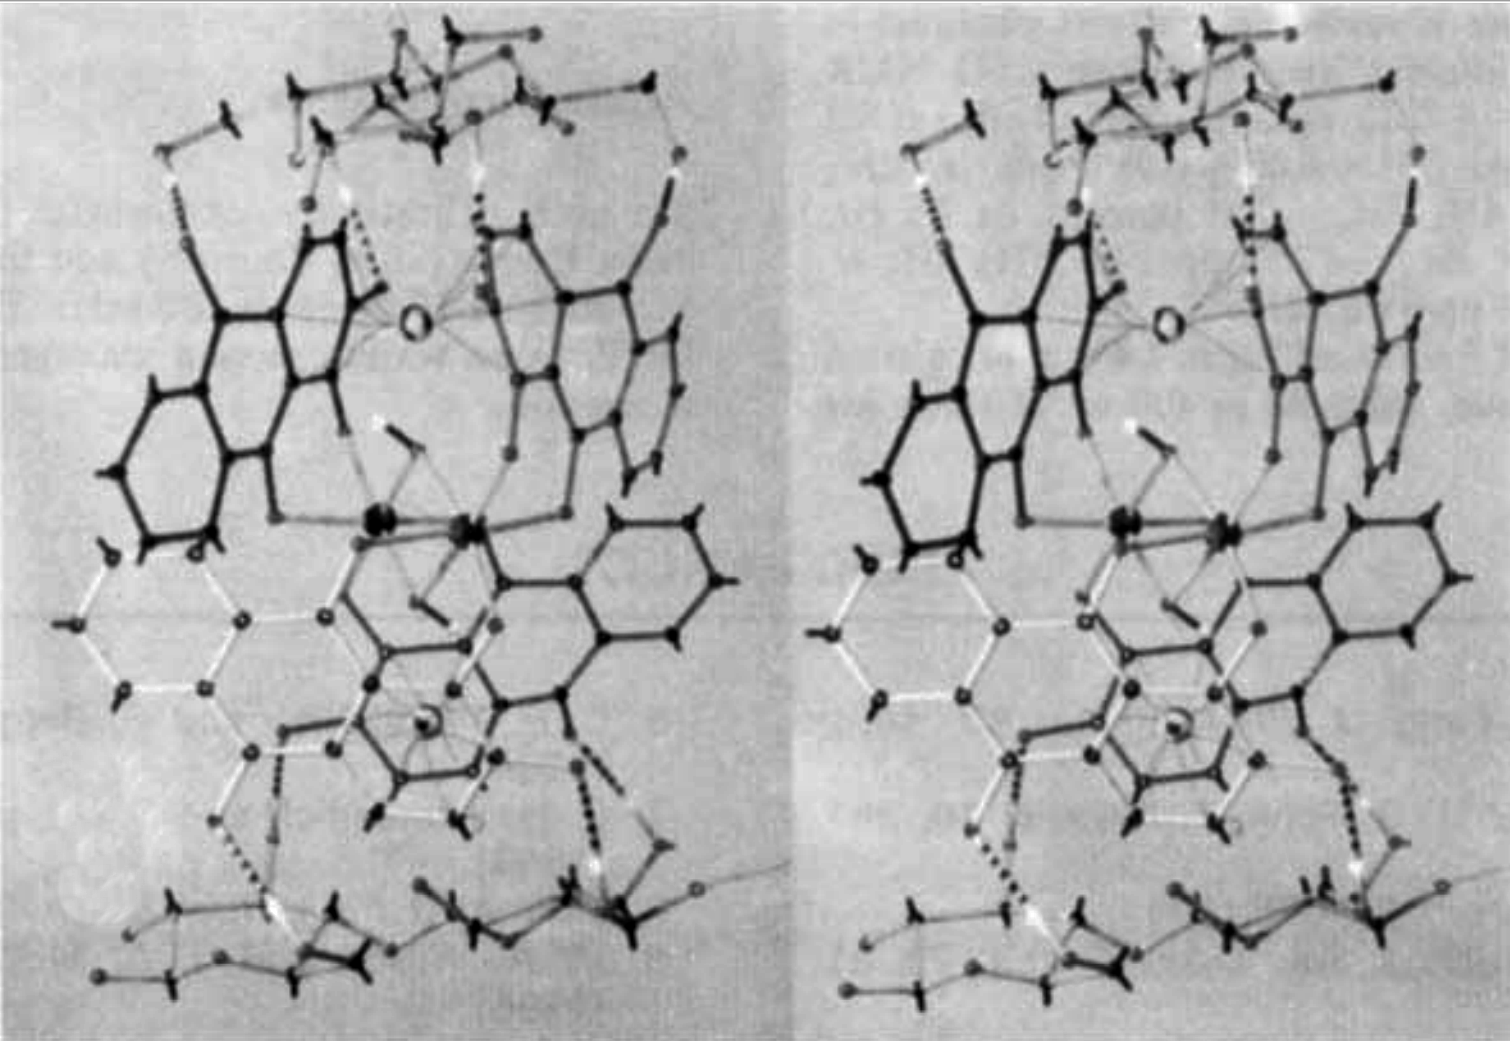 Description: Stereoscopic view of a closed alizarin tetrahydrate complex binding with two cellubiose units